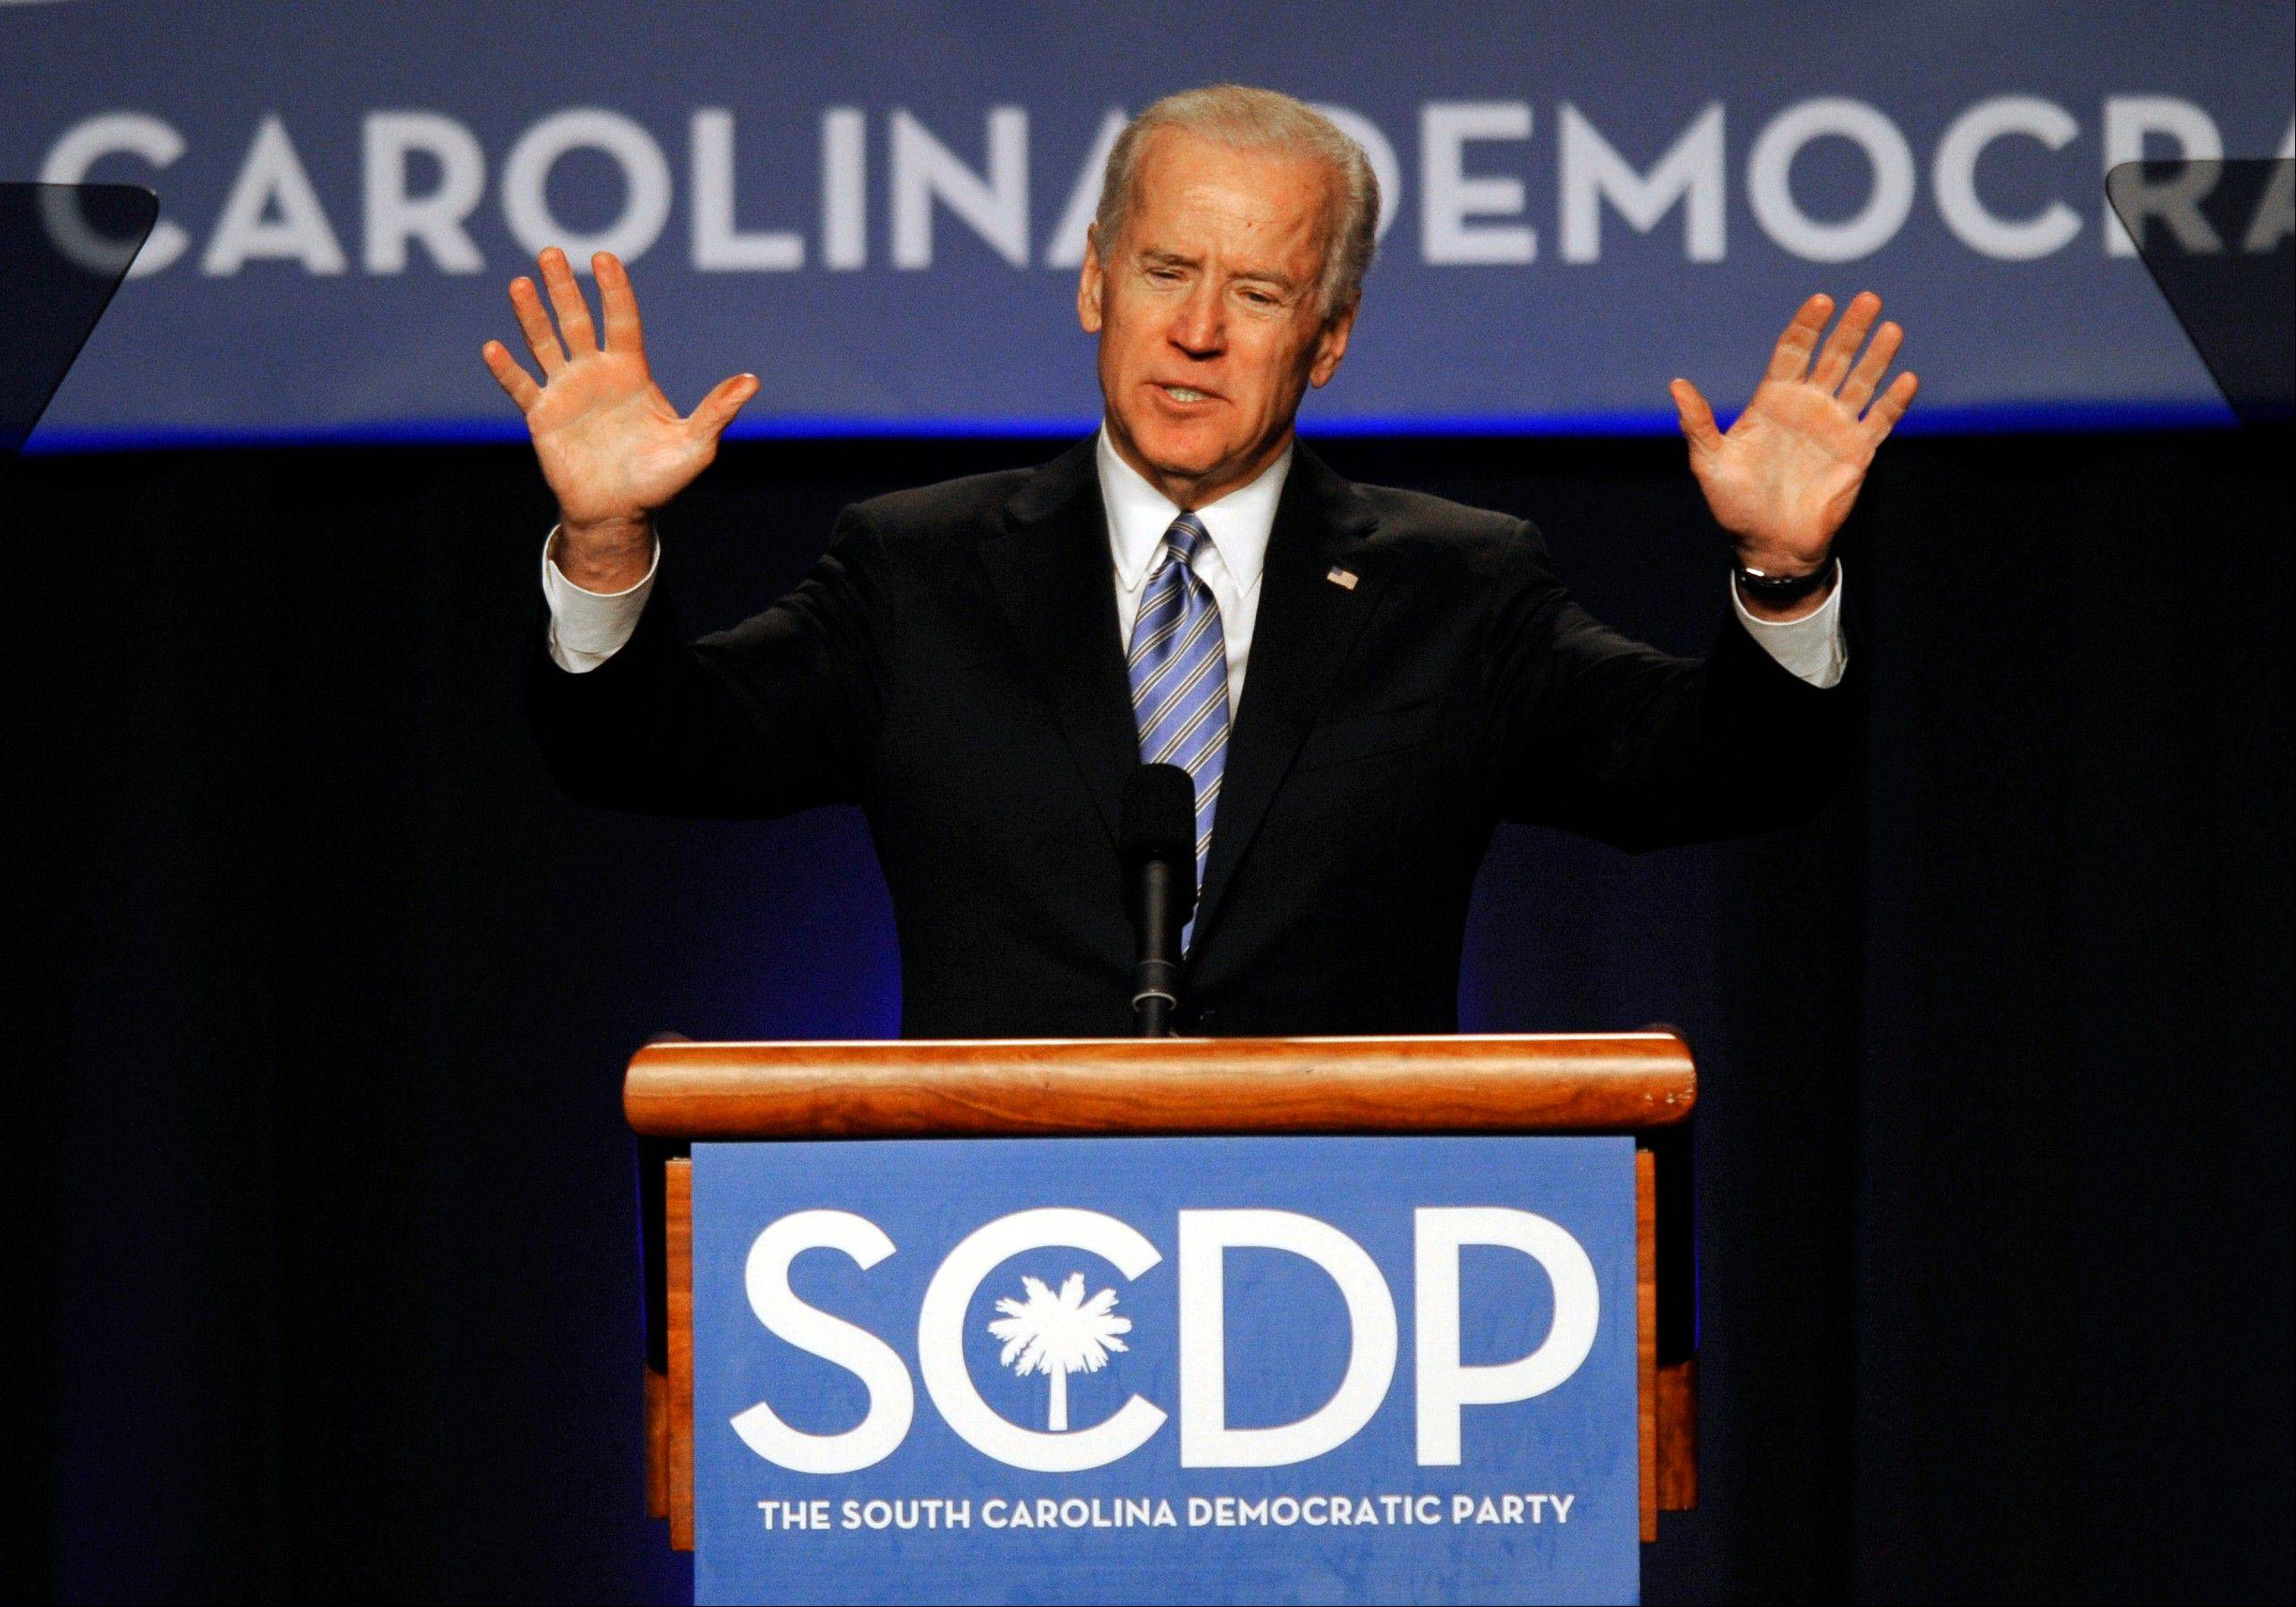 In this May 3, 2013 file photo, Vice President Joe Biden speaks during the South Carolina Democratic parties Jefferson Jackson Dinner in Columbia, SC. Biden may run for president in 2016, or he may not. But he wants you to know he could. Iowa. New Hampshire, South Carolina. Michigan. Three years out from the next presidential election, the vice president is polishing his connections and racking up favors in all the right states to ensure he stays part of the conversation, keeping his name near the top of a list of likely contenders even if the prime spot seems to have already been claimed by Hillary Rodham Clinton.